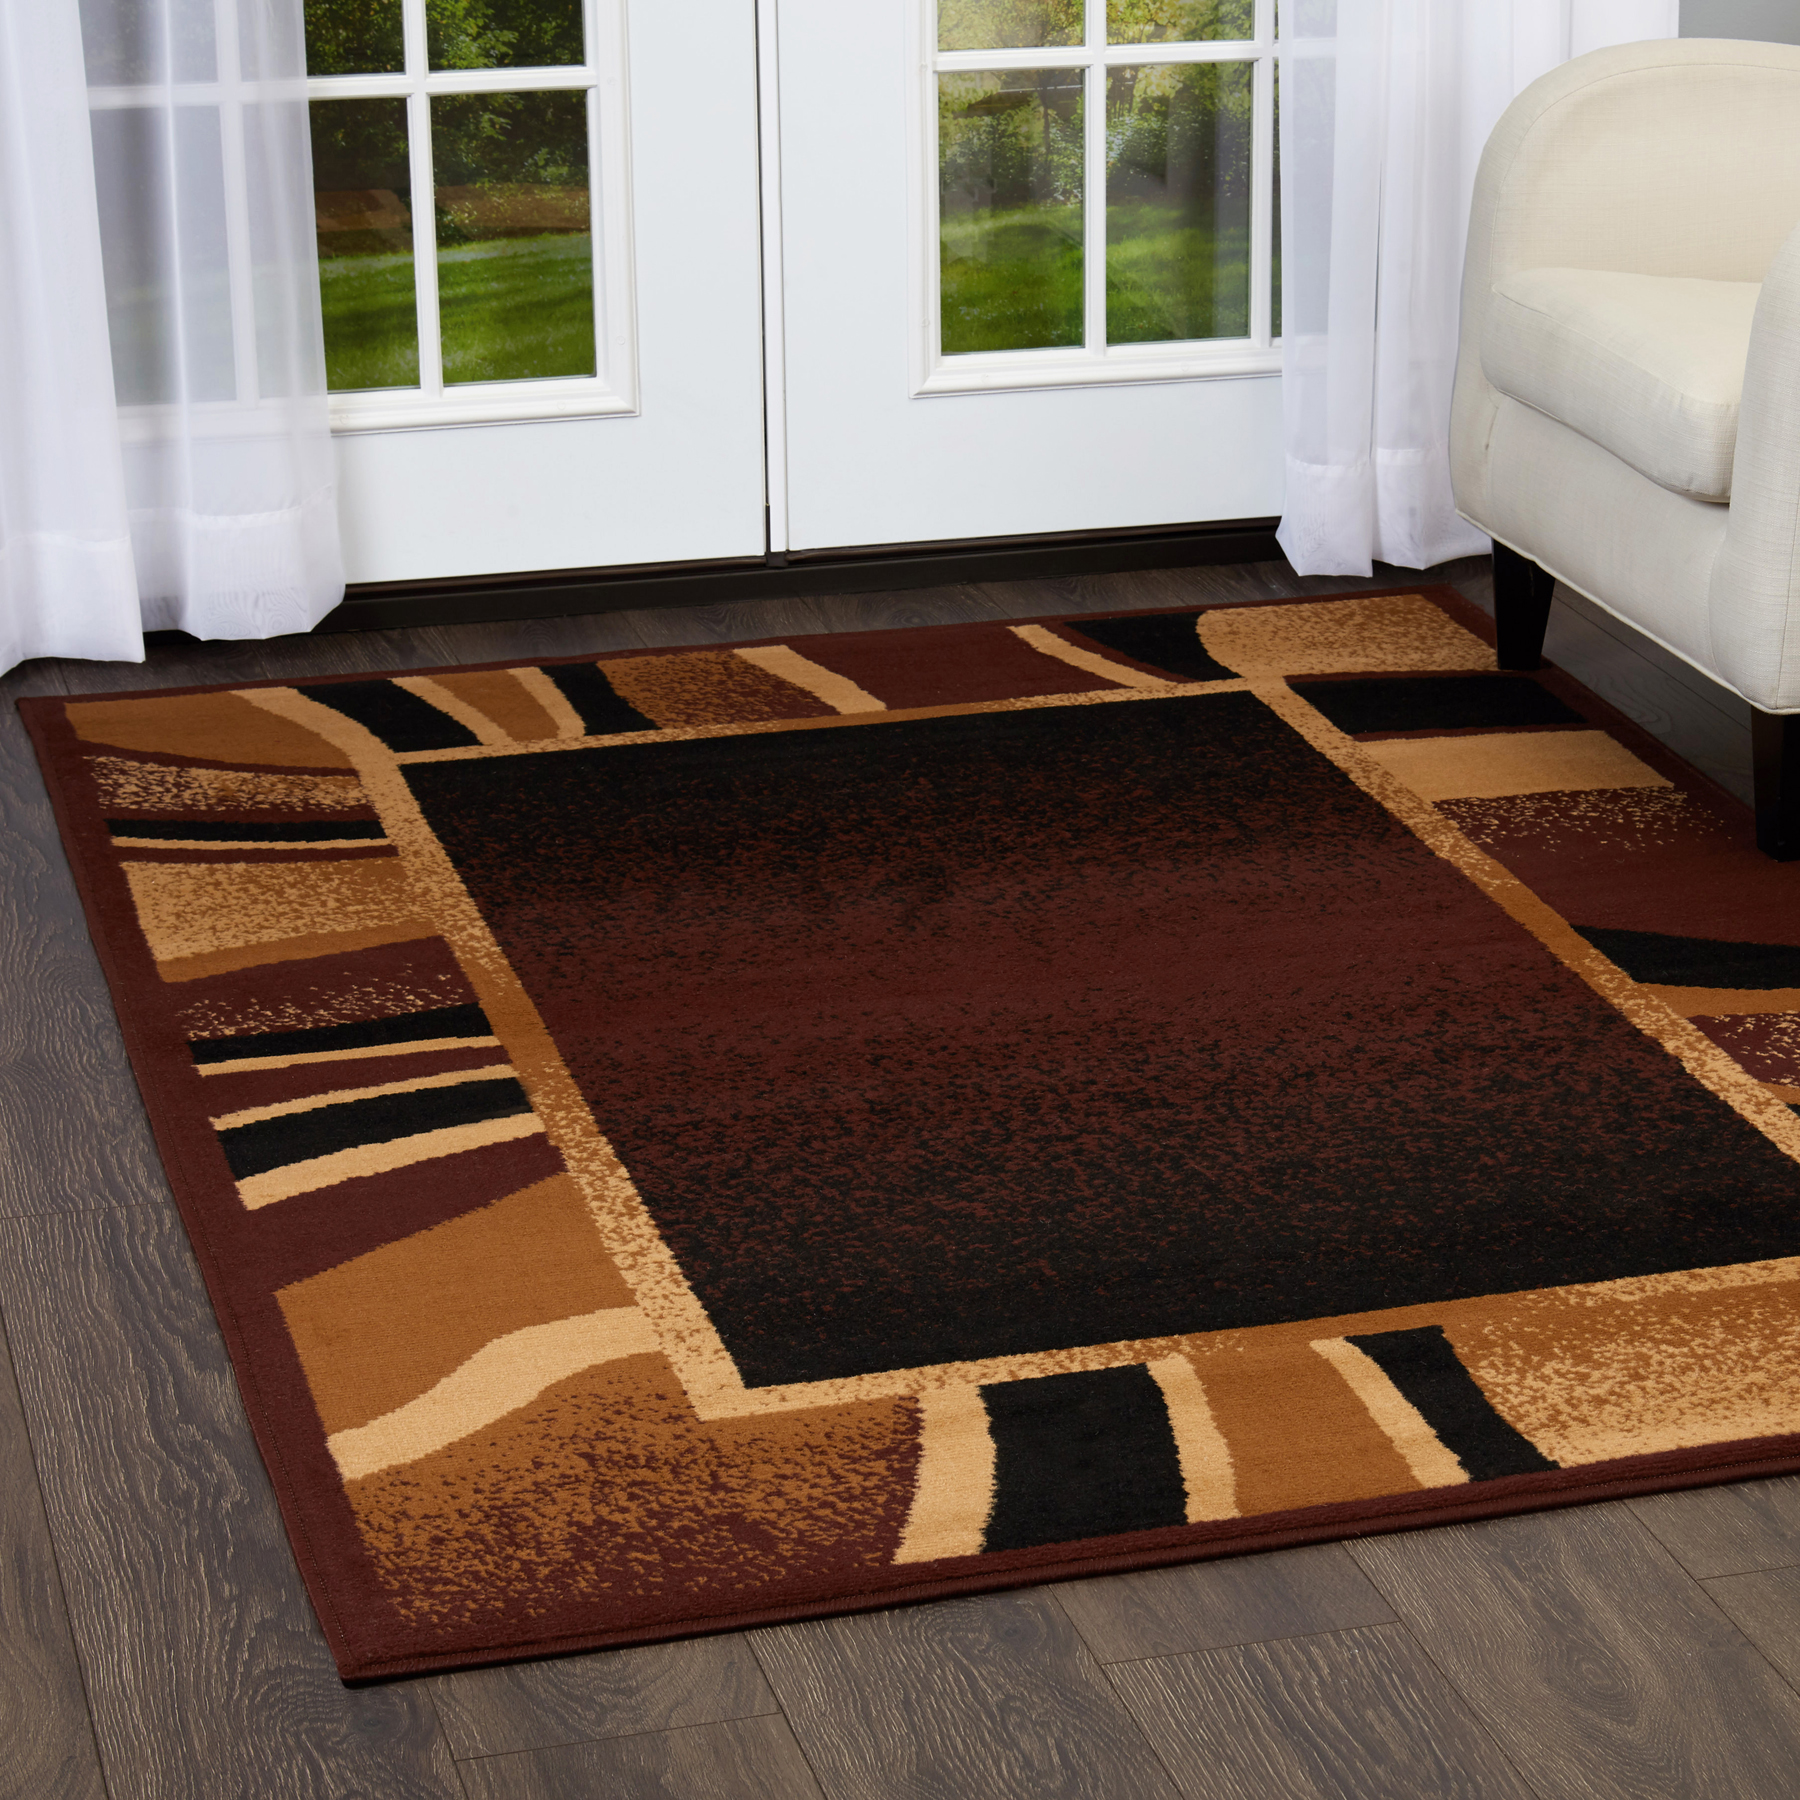 Affordable Modern Rugs: Rugs Area Rugs Carpet Flooring Area Rug Floor Decor Modern